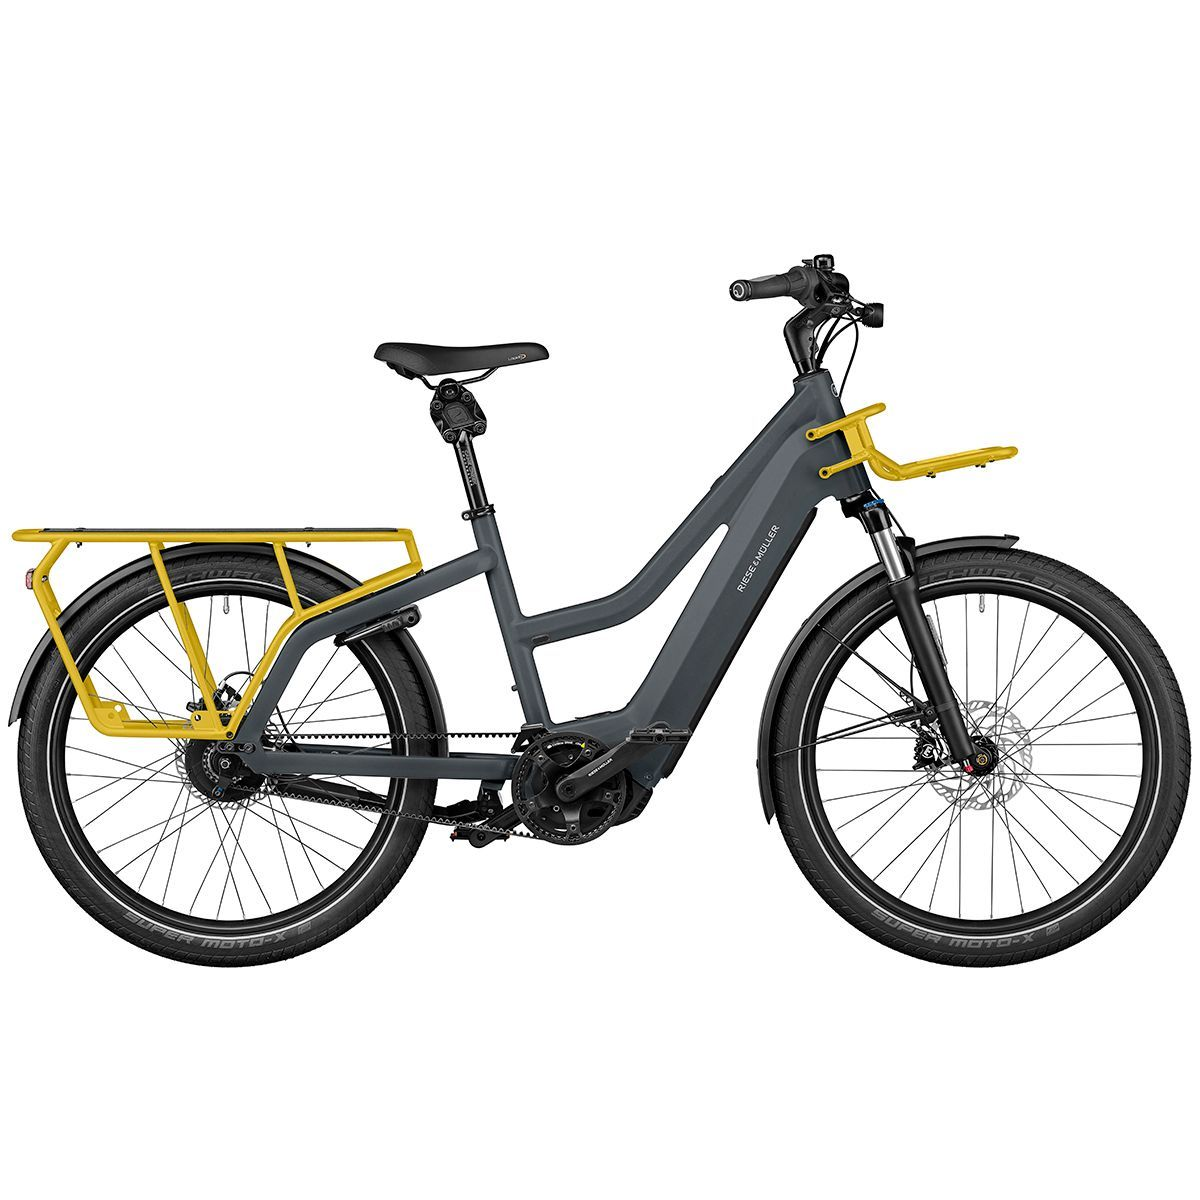 Riese & Muller Multicharger Mixte GT Vario-Oregon E-Bikes